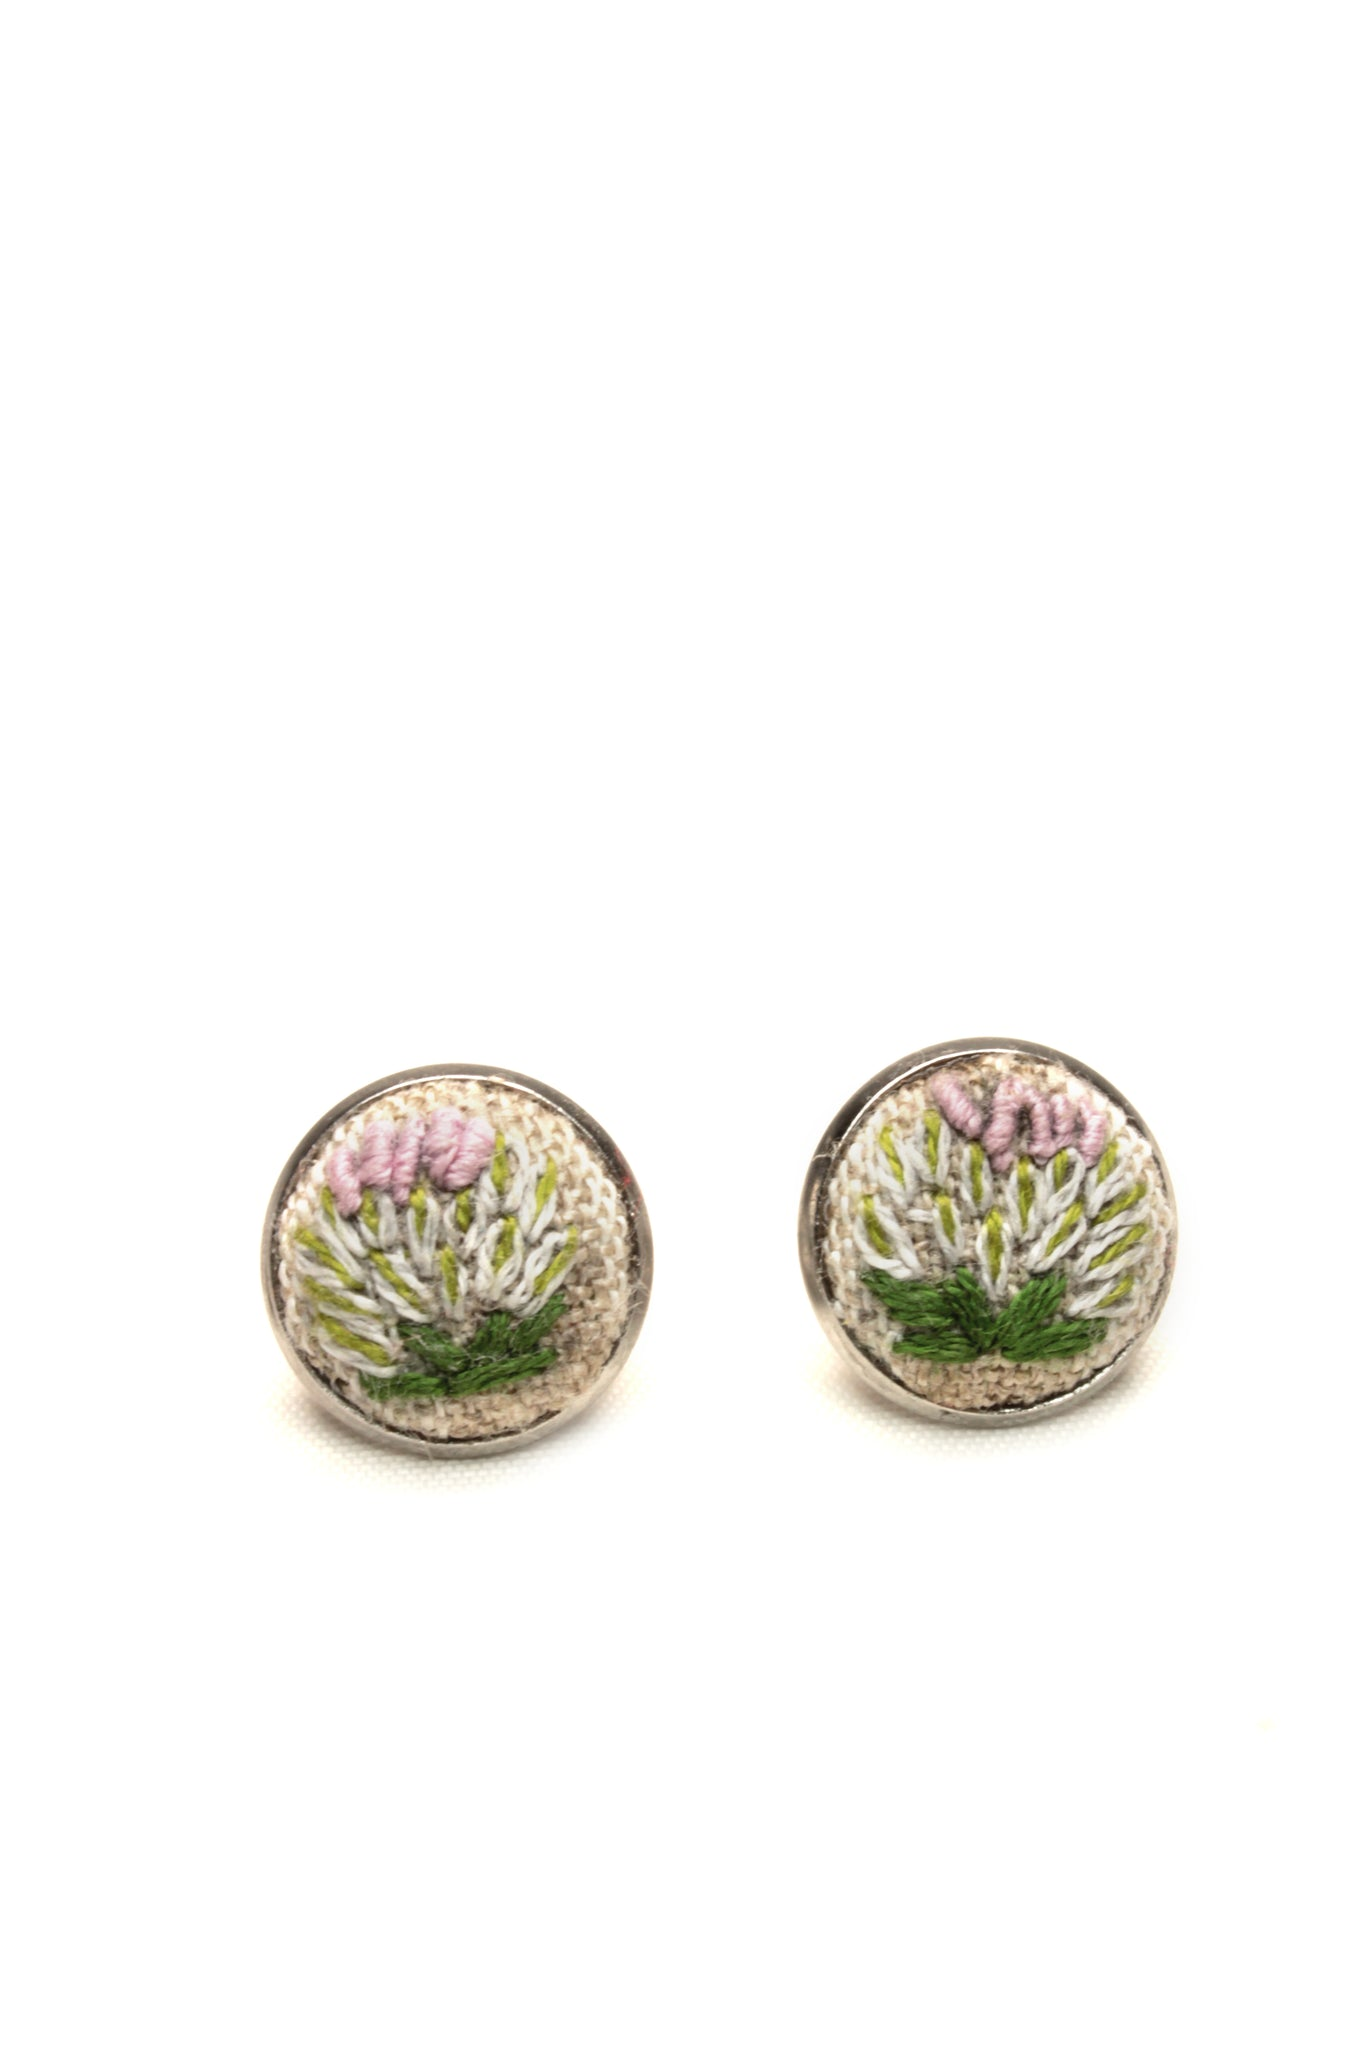 NEW | Embroidery Studs Earrings - Bullion Flower